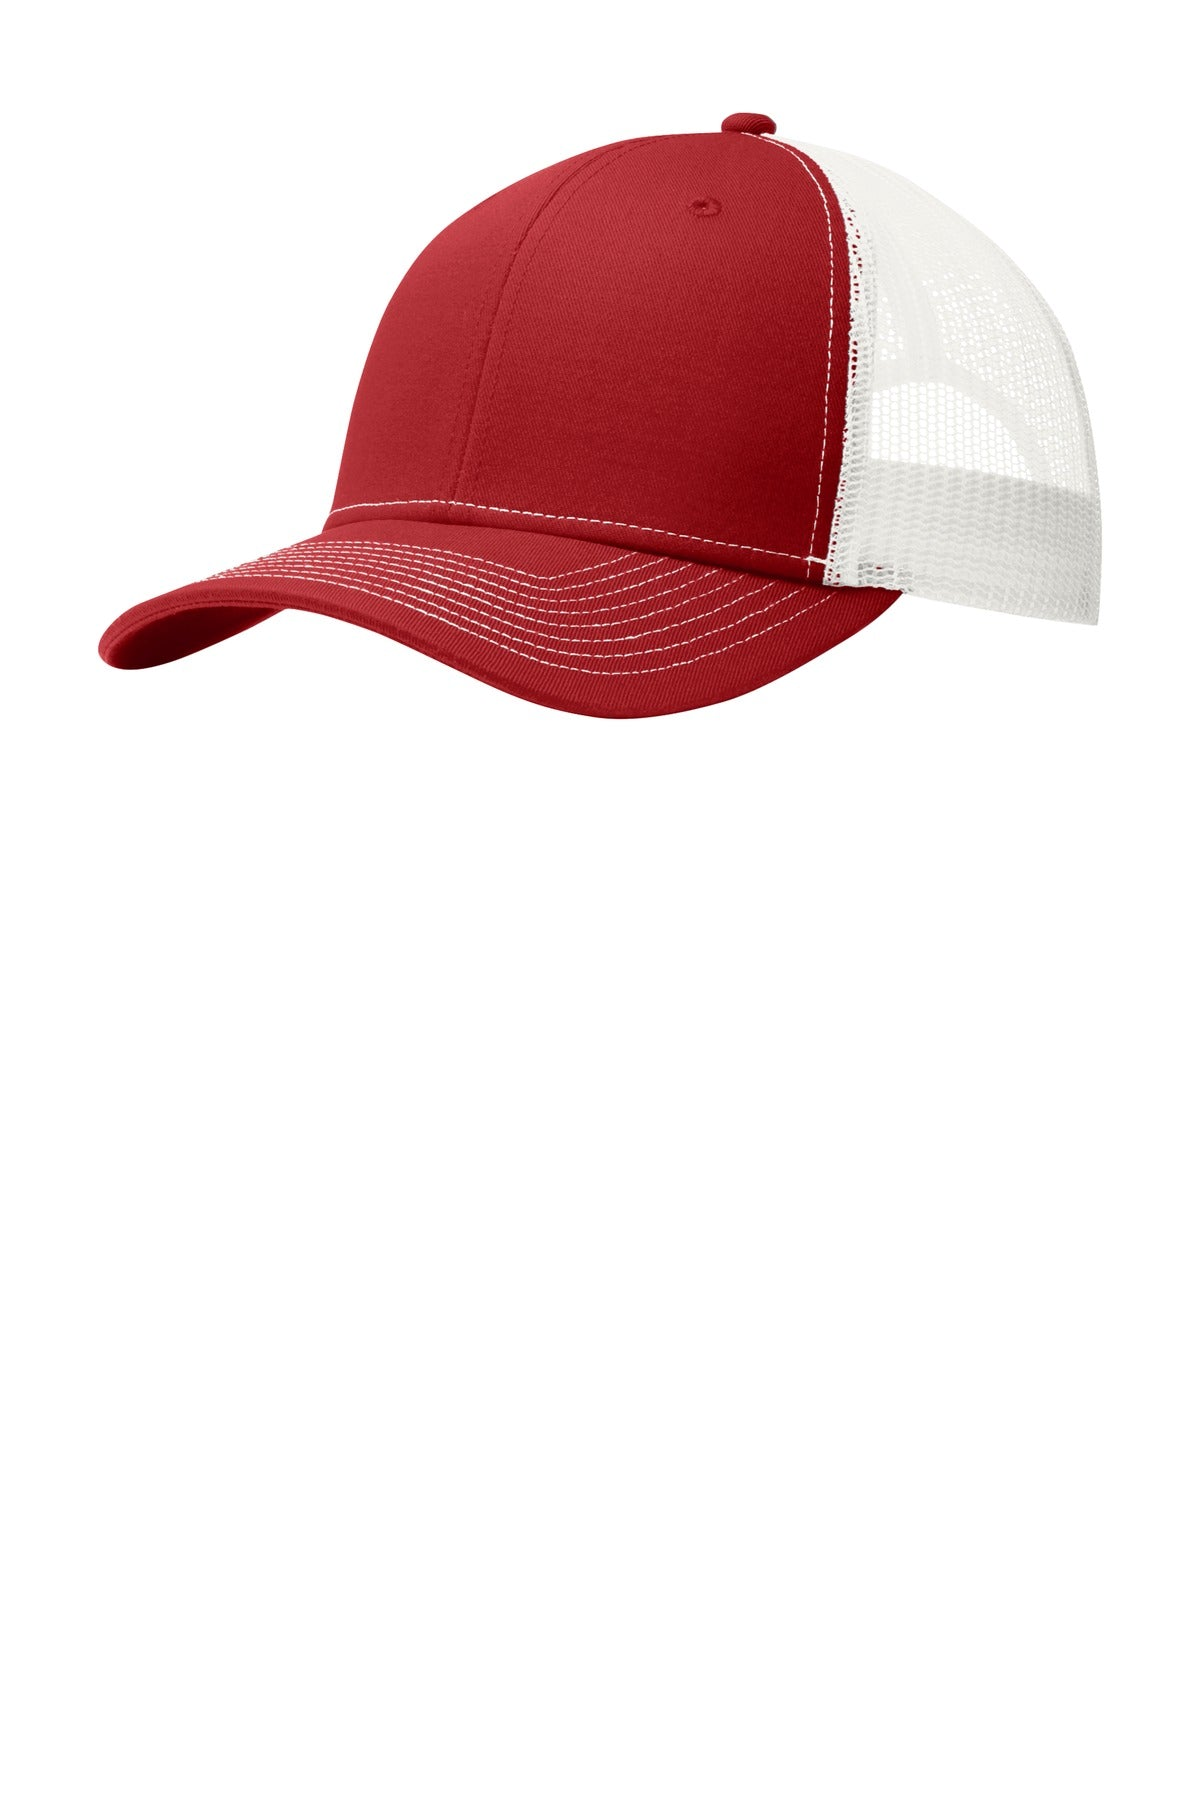 Flame Red / White Port Authority Snapback Trucker Cap